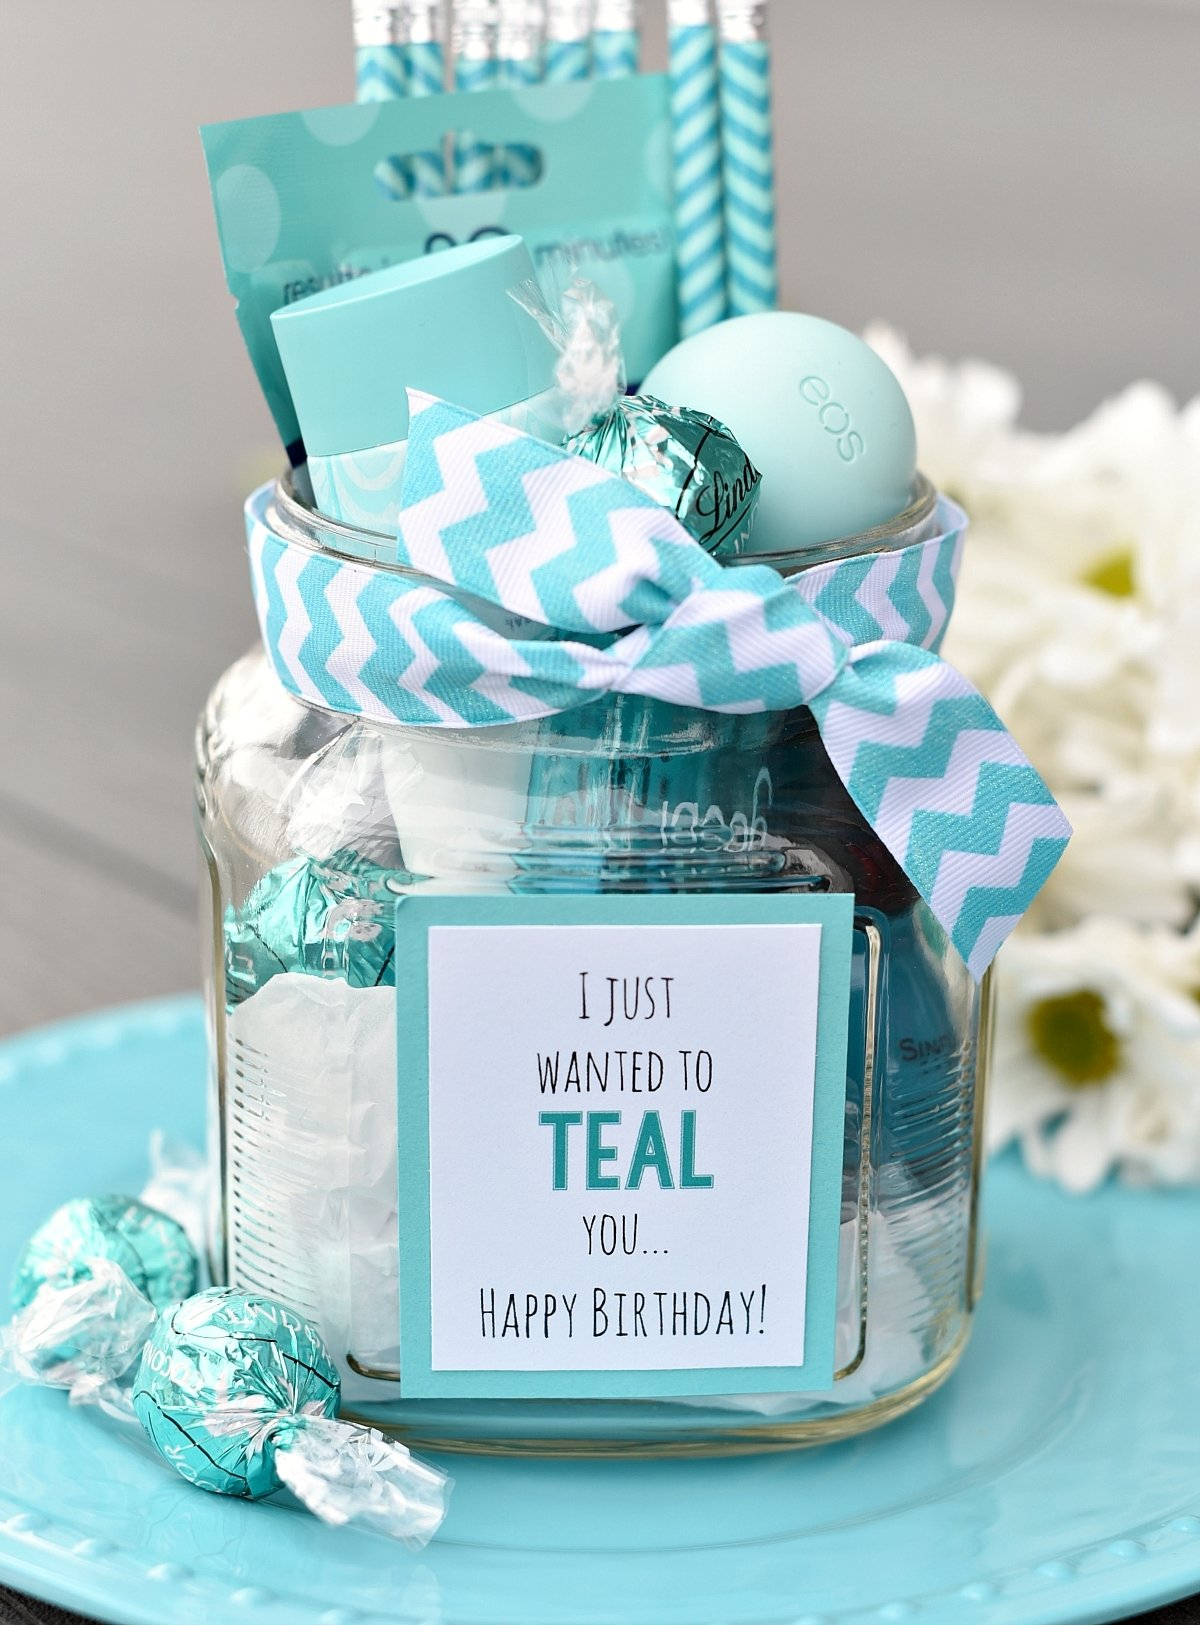 10 Amazing Birthday Gift Ideas For Friend teal birthday gift idea for friends fun squared 1 2020